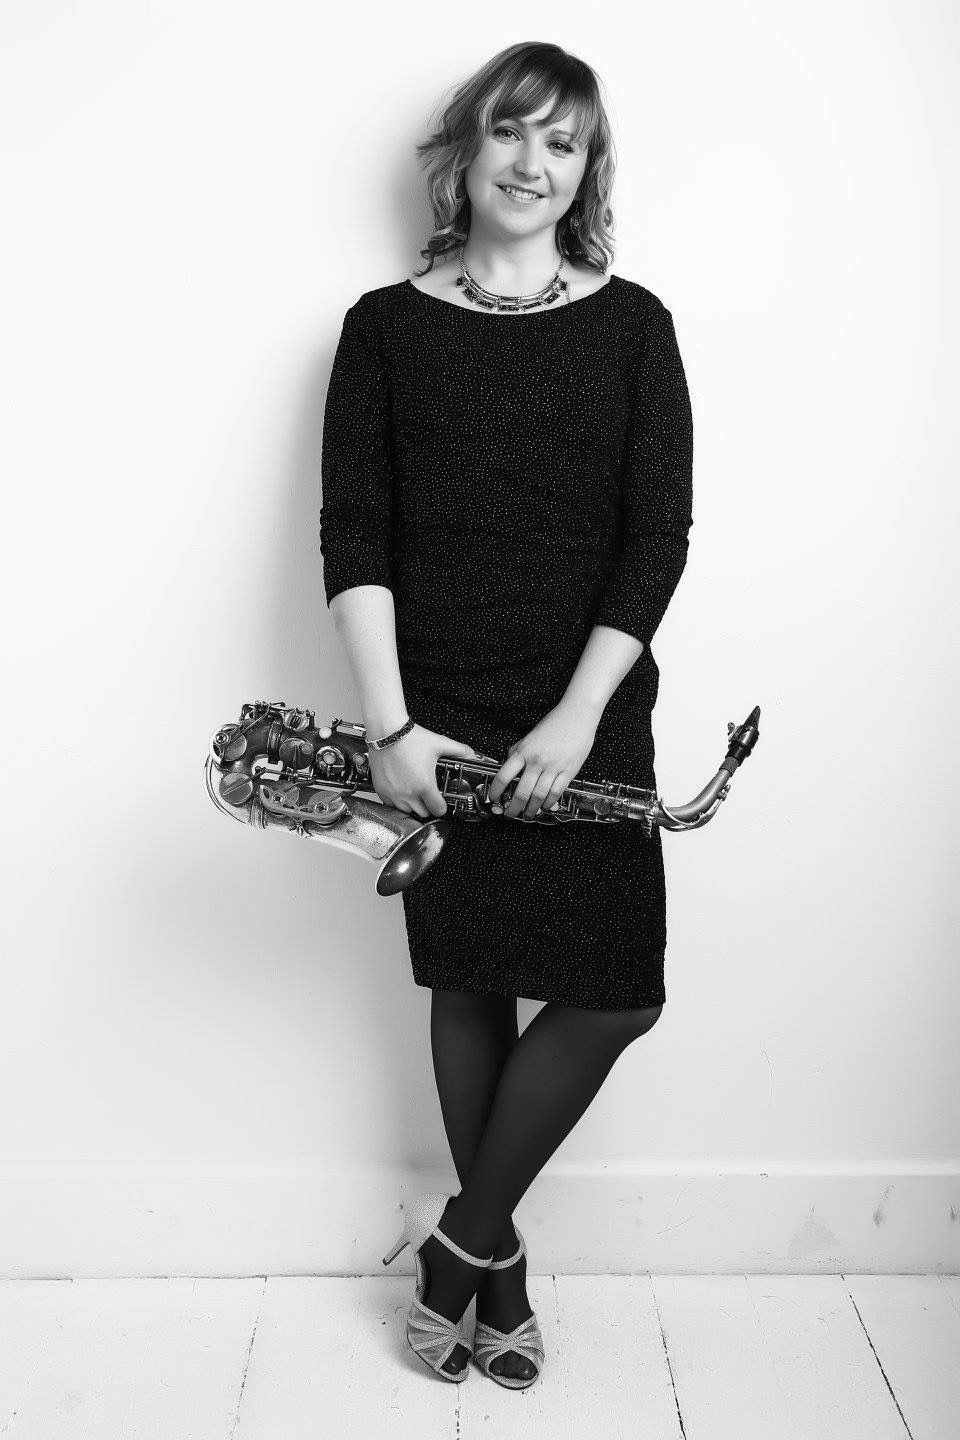 Go along to the Illminster Arts Centre and hear Amy's jazz voice